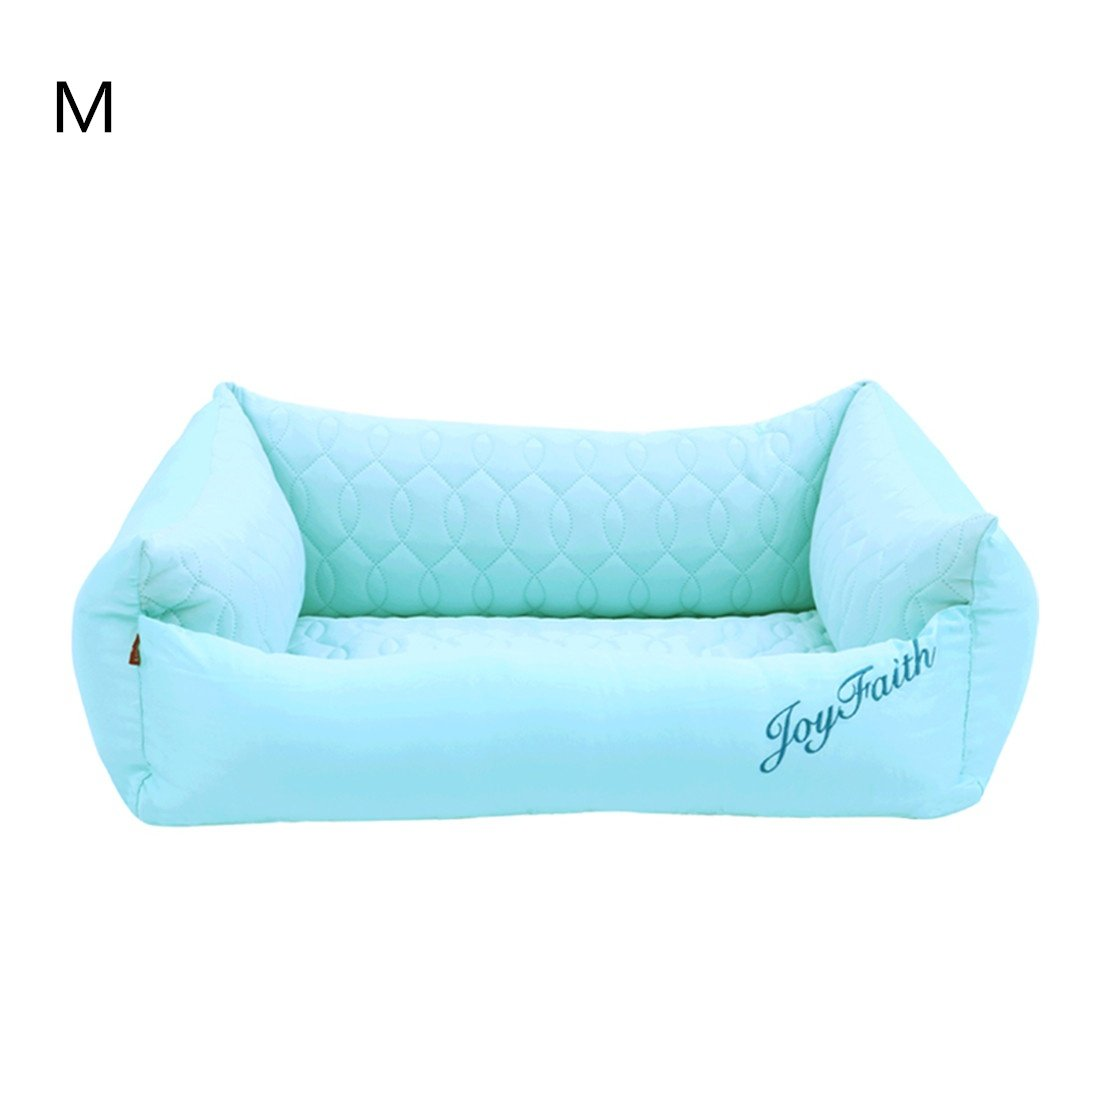 M CHWWO Light Green Luxury Dog Bed Pet Bed Dog Mattress Supplies Cool Fiber Cool in Summer Comfortable Rest time Removable and Washable, M